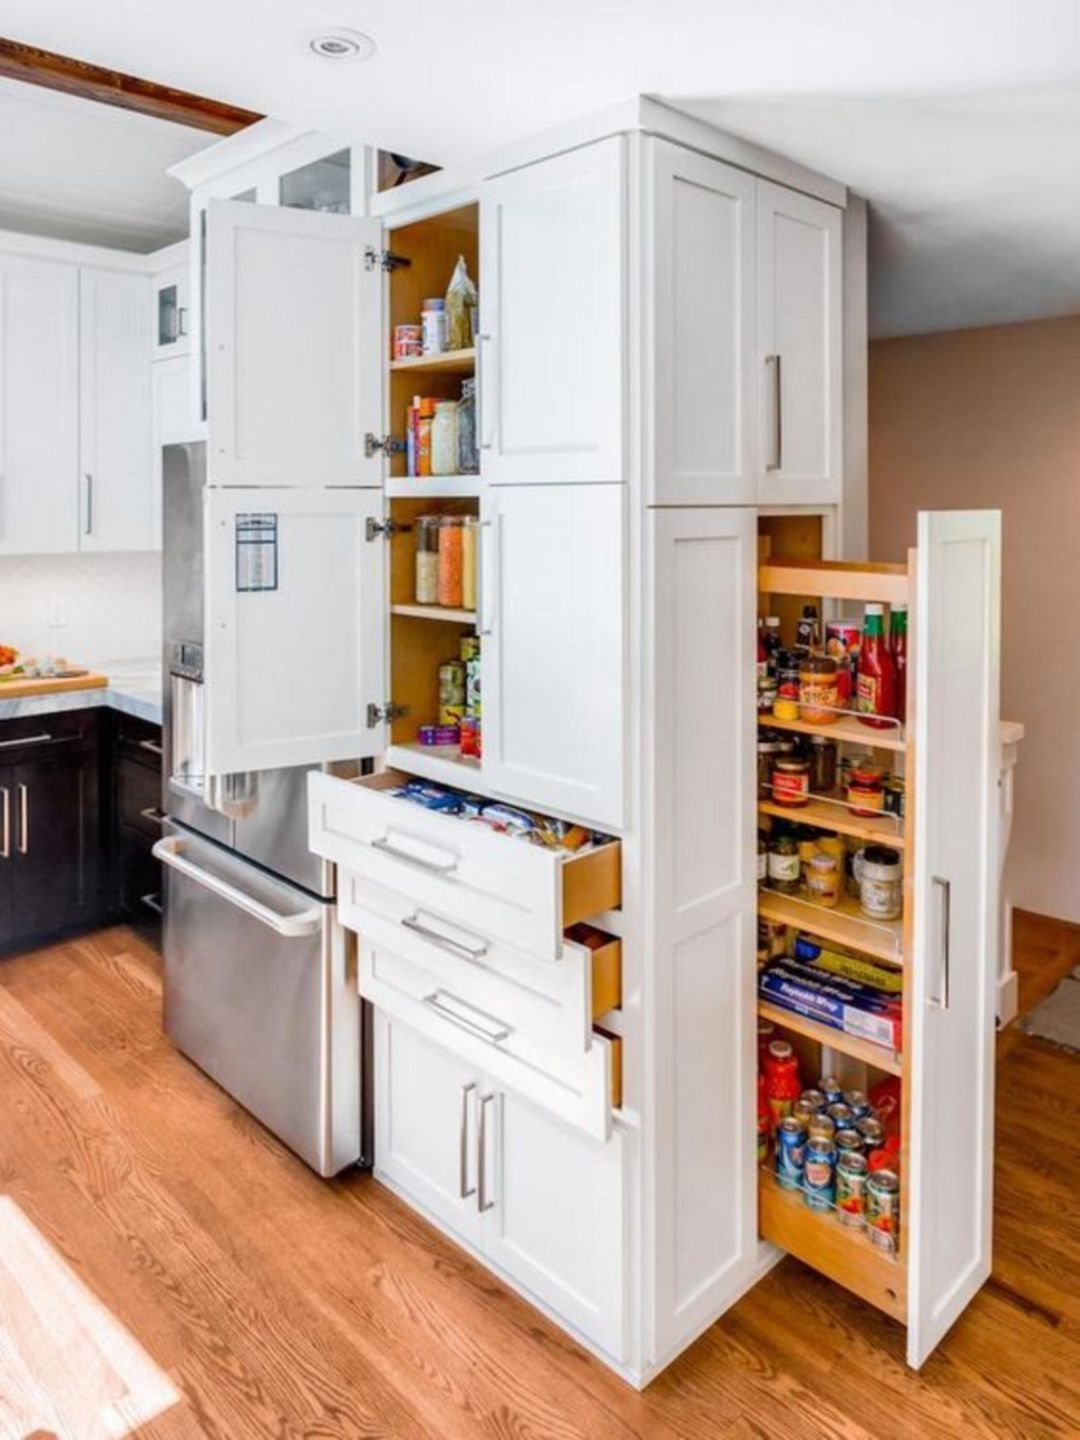 49 Small Kitchen Storage Ideas for a More Efficient Space #smallkitchendesigns